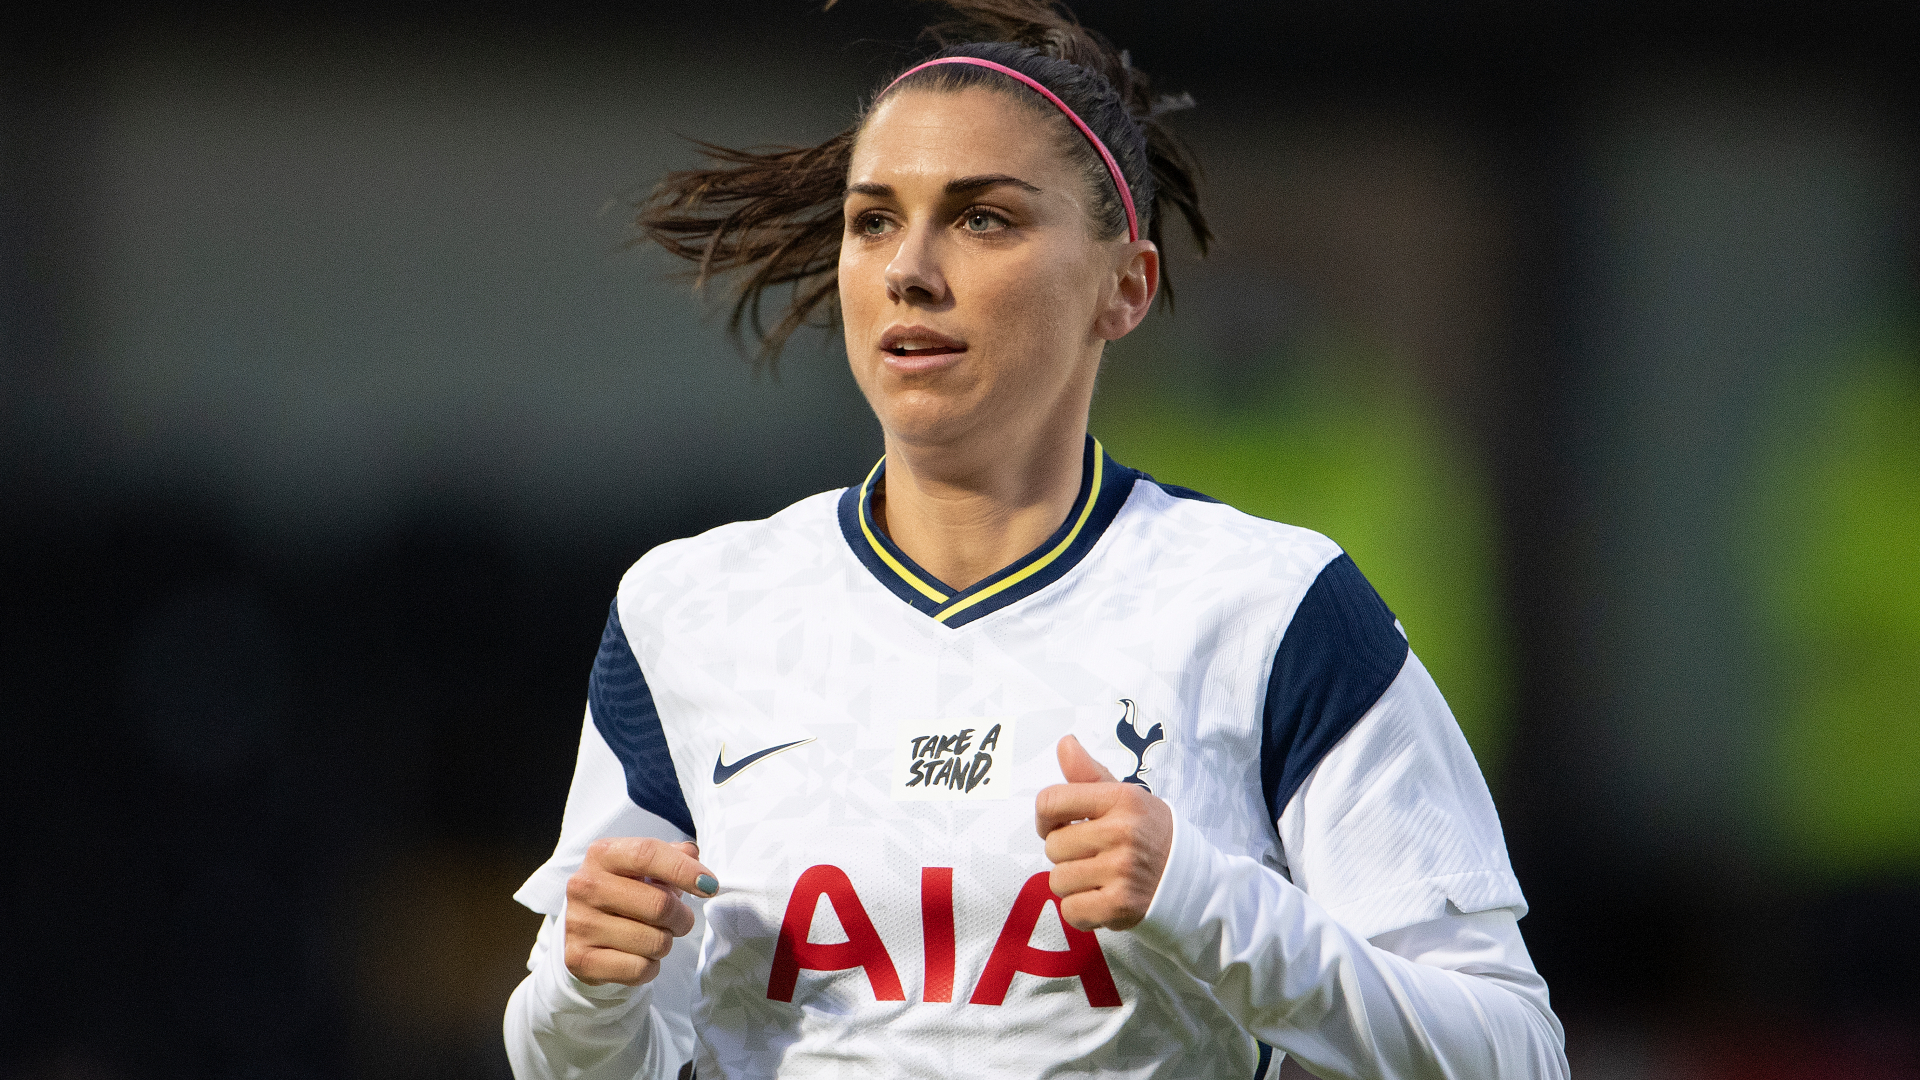 Alex Morgan to leave Tottenham and return to USA in 2021